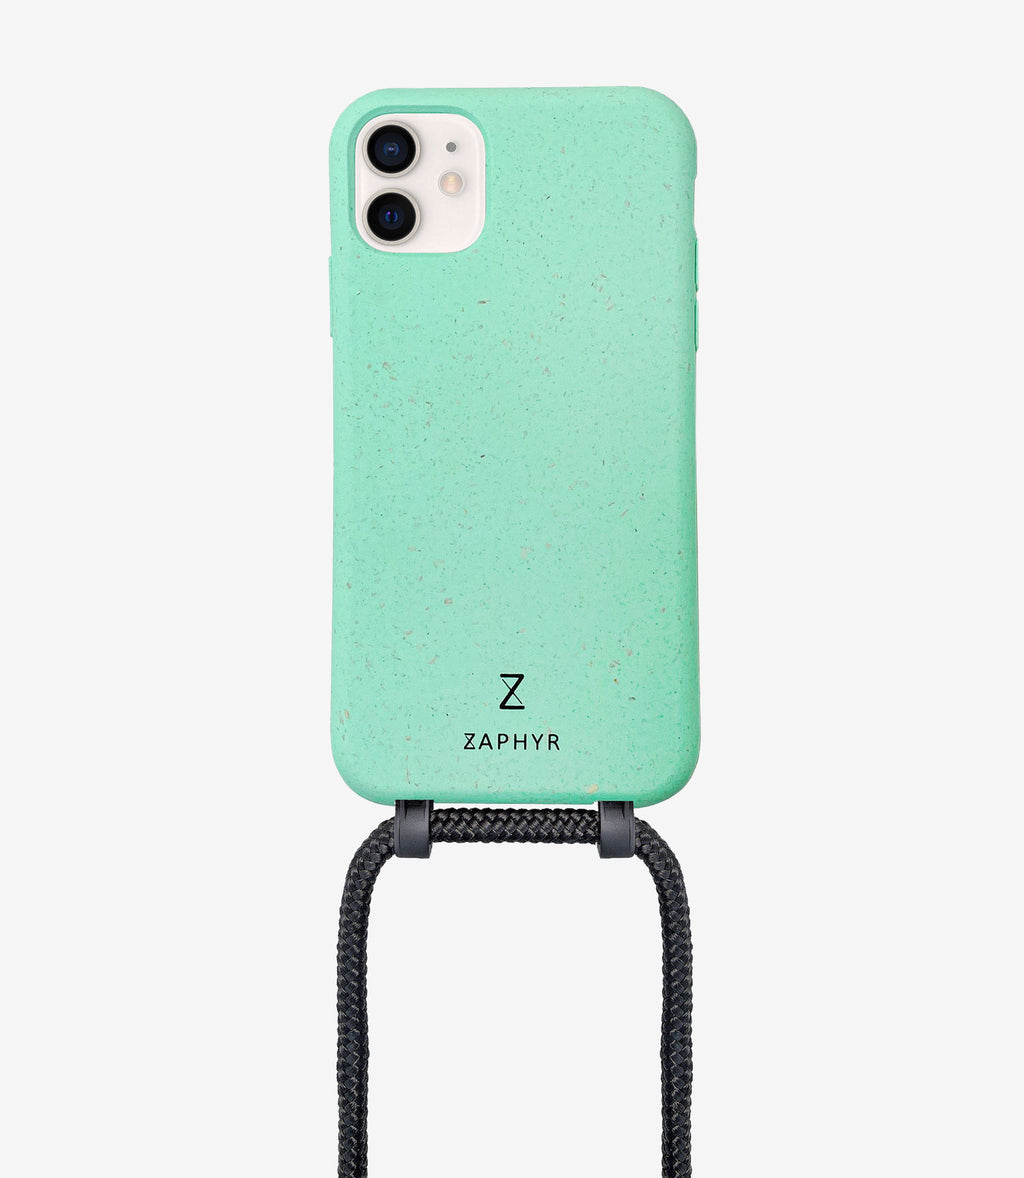 ZAPHYR crossbody phone case, Handykette in mint mit Kordel in schwarz / black, necklace case